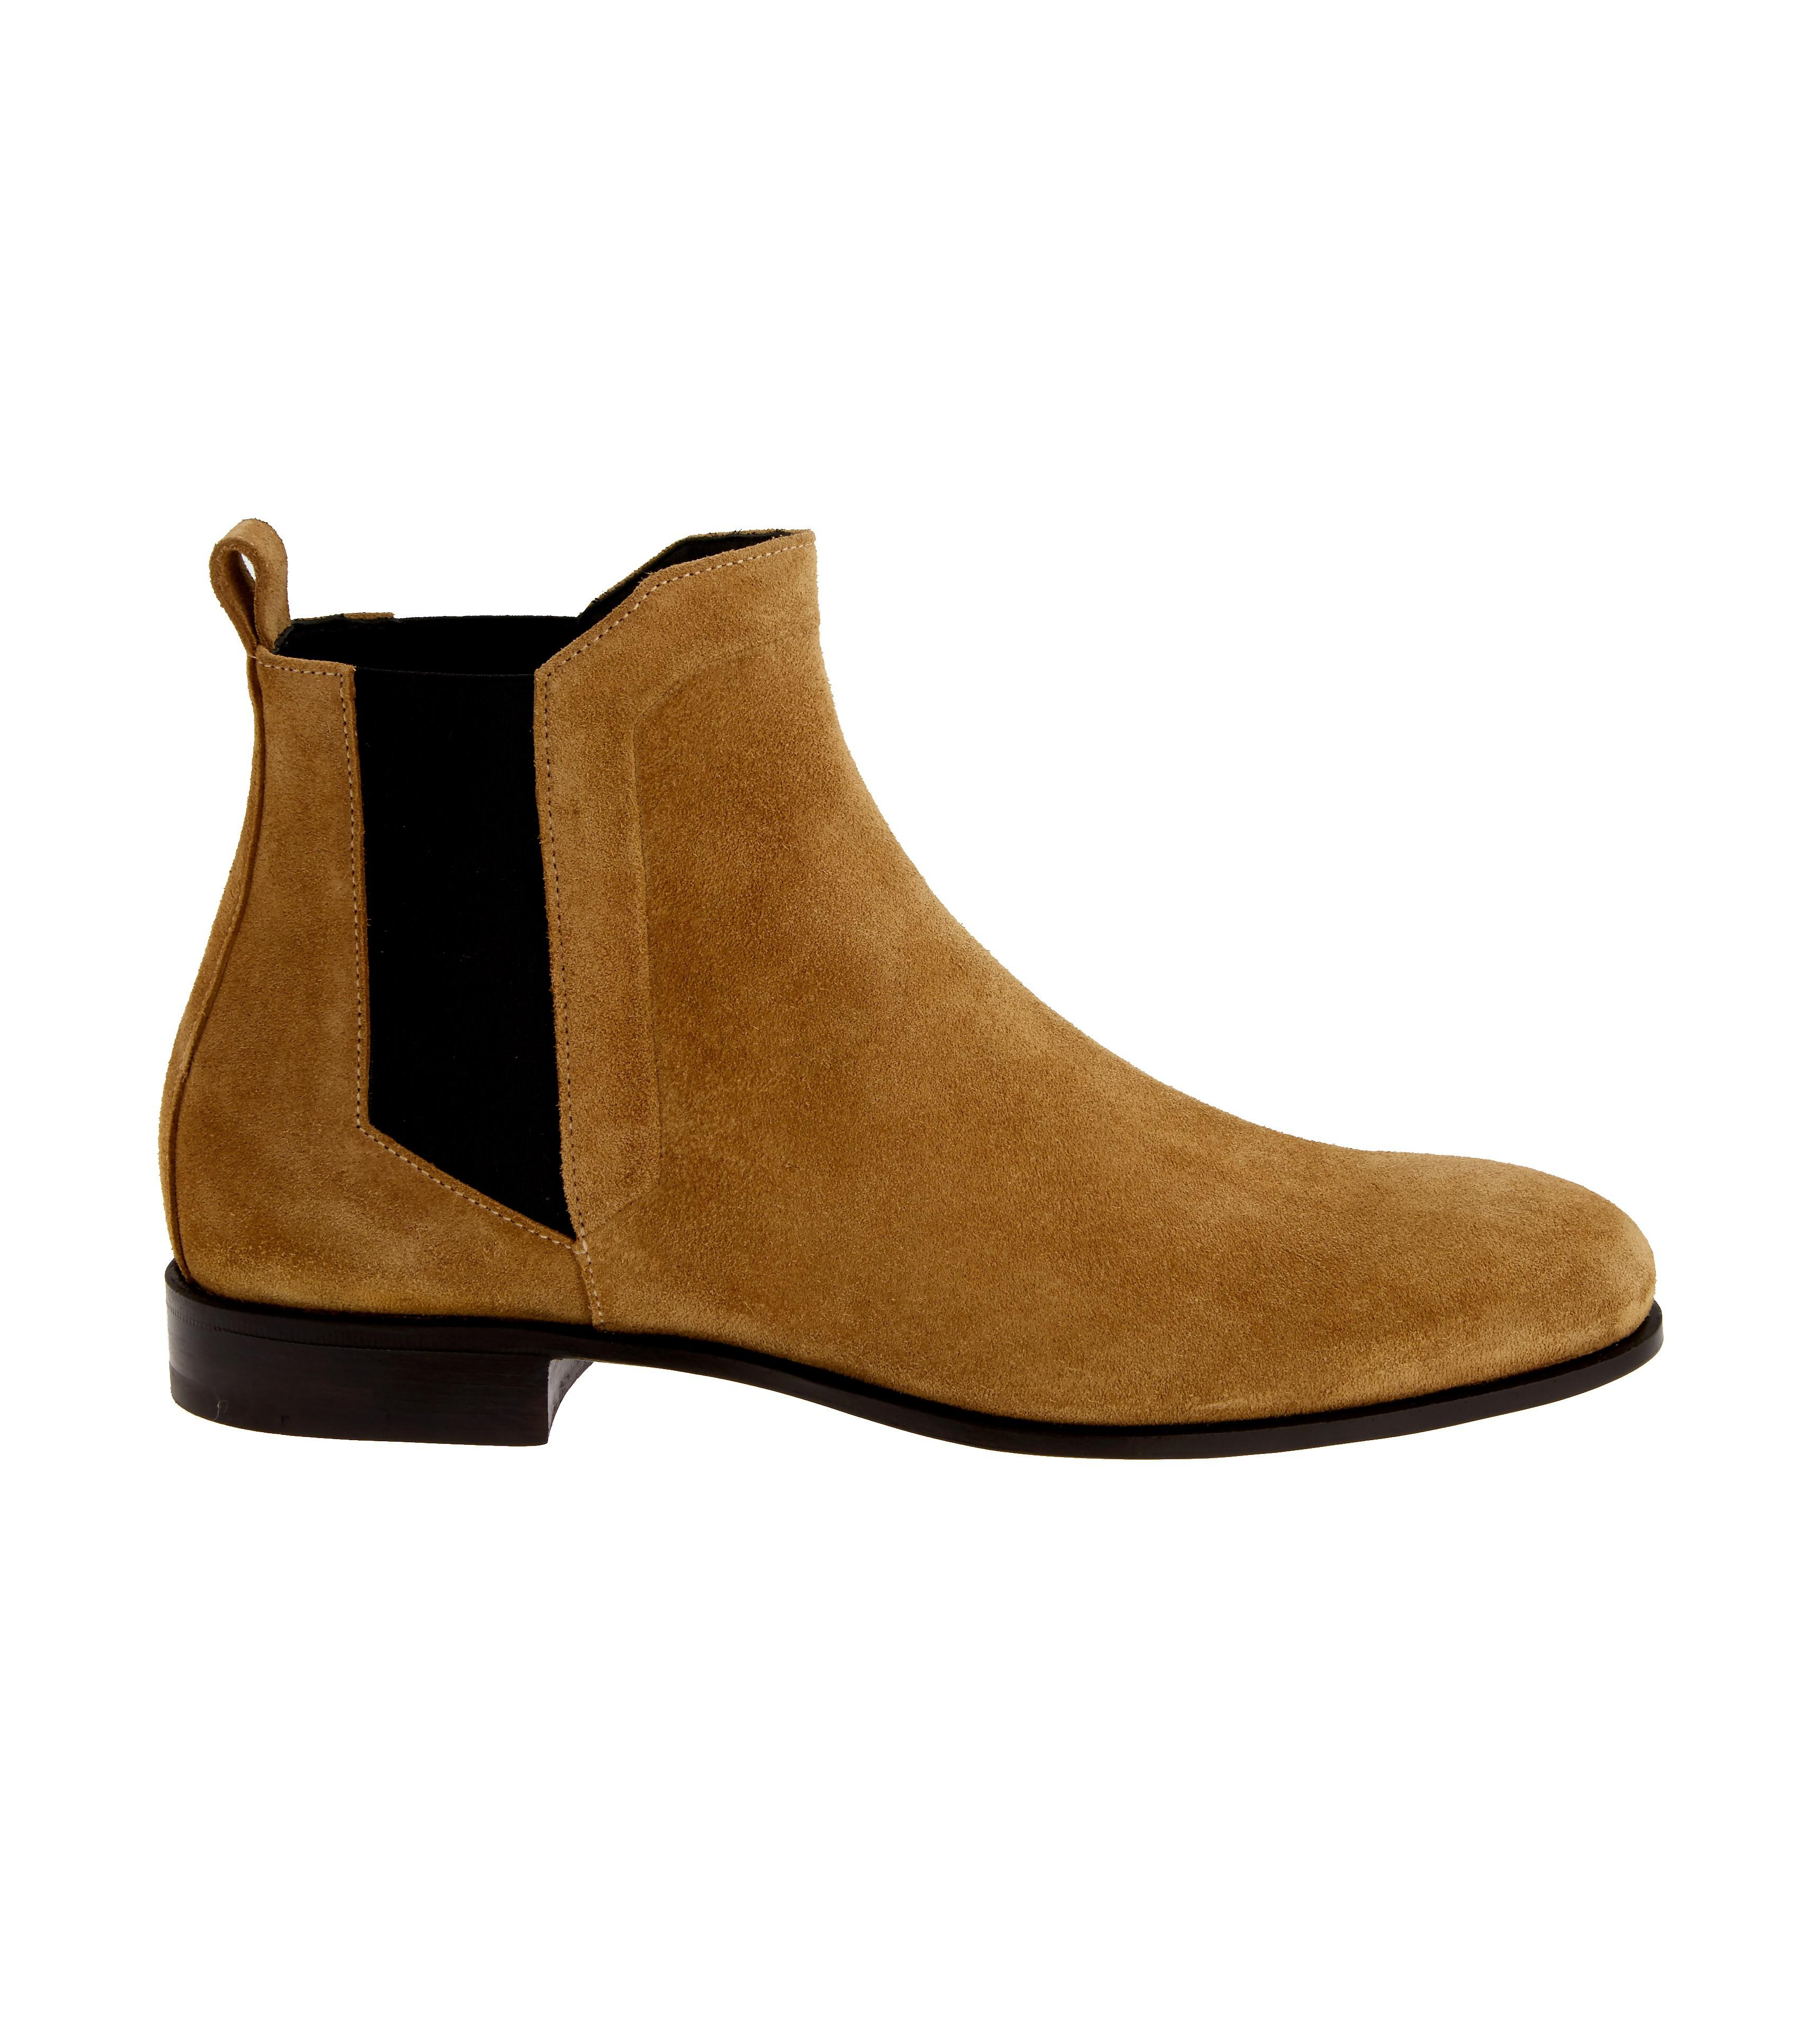 Gucci Grey Suede Drugstore Chelsea Boots viKcfE97A3